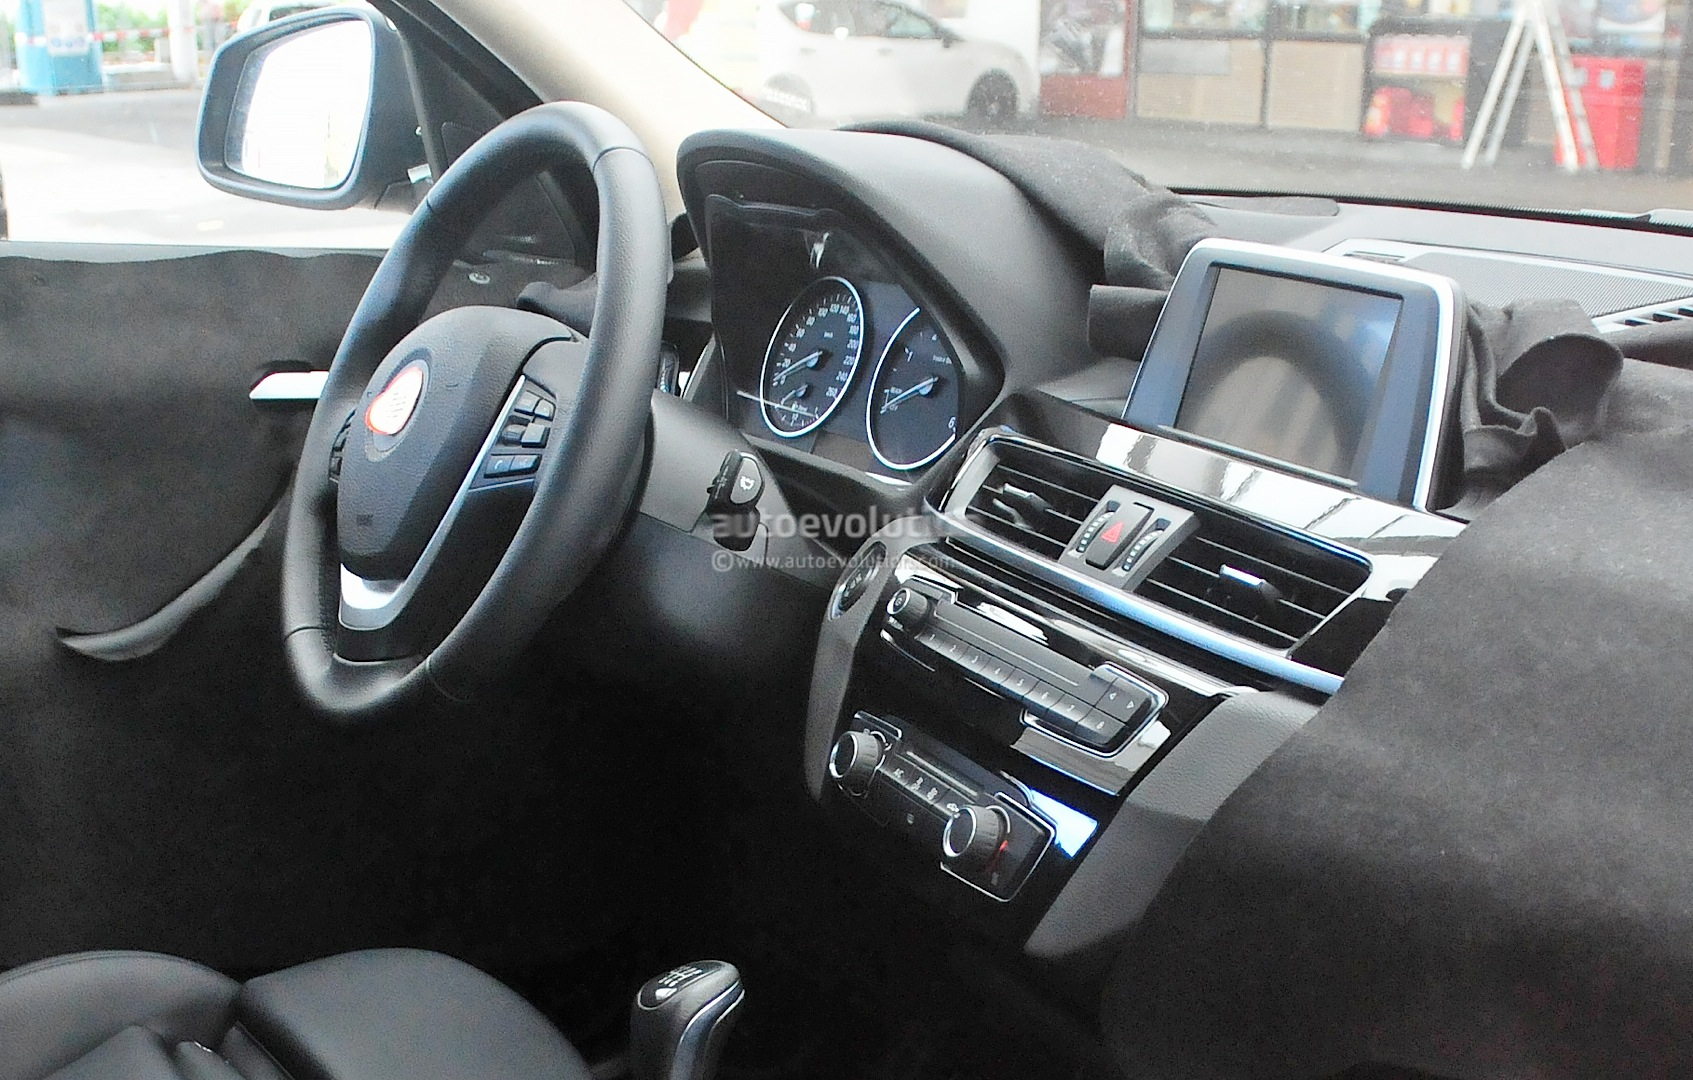 2016 bmw x1 interior revealed in spy photos autoevolution for Interieur x2